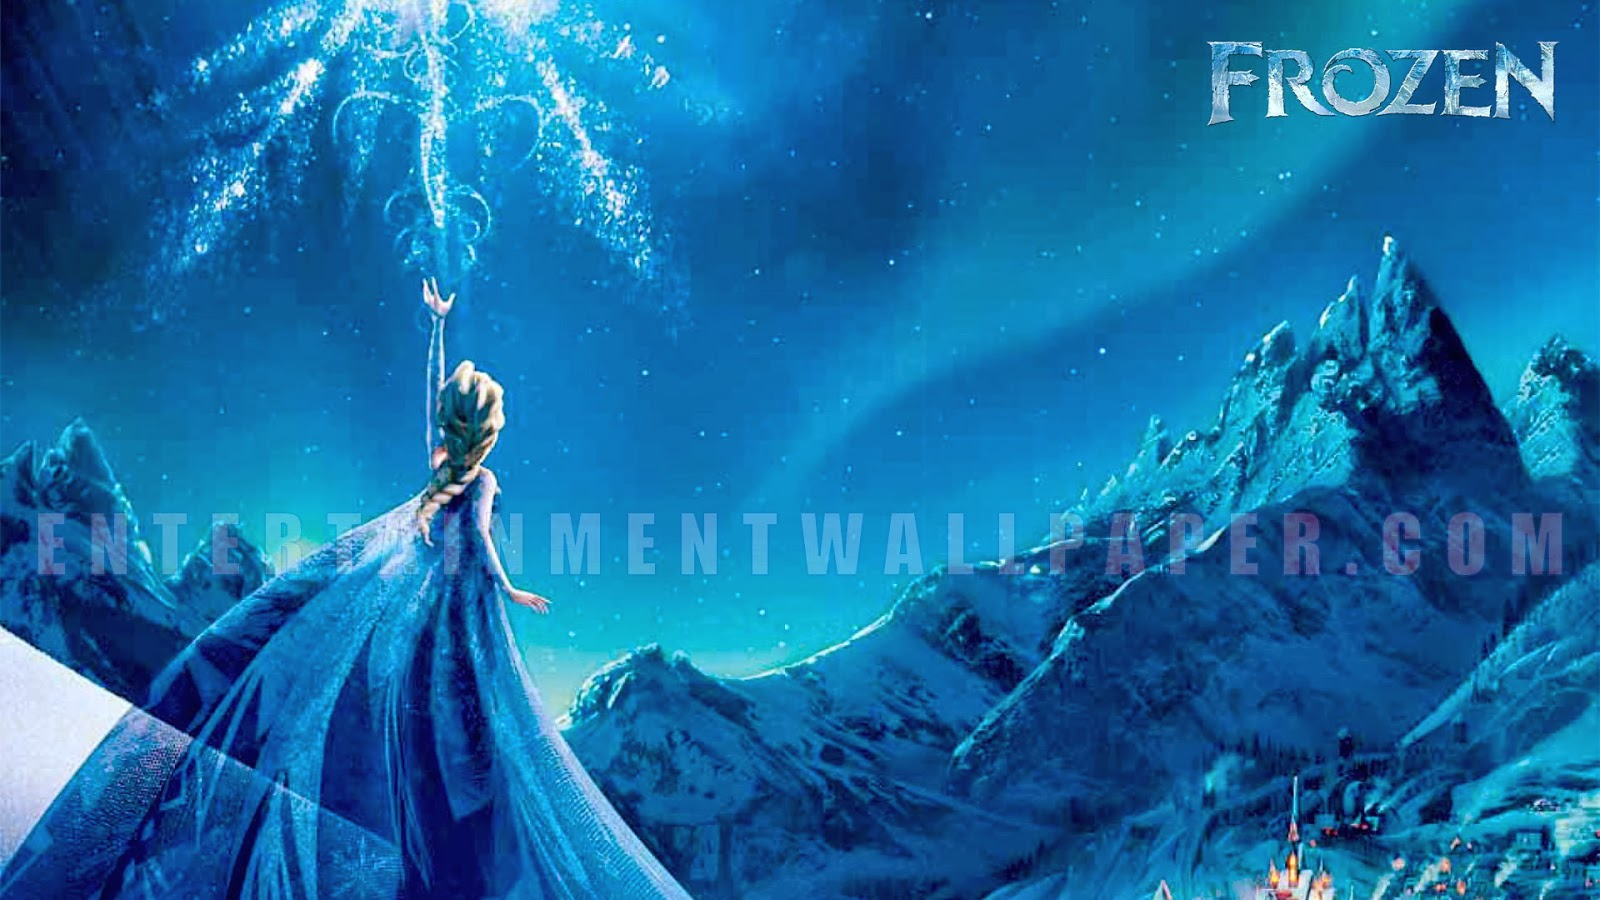 Frozen HD Wallpapers   Disnep 3D Movie   HD Wallpapers Blog 1600x900